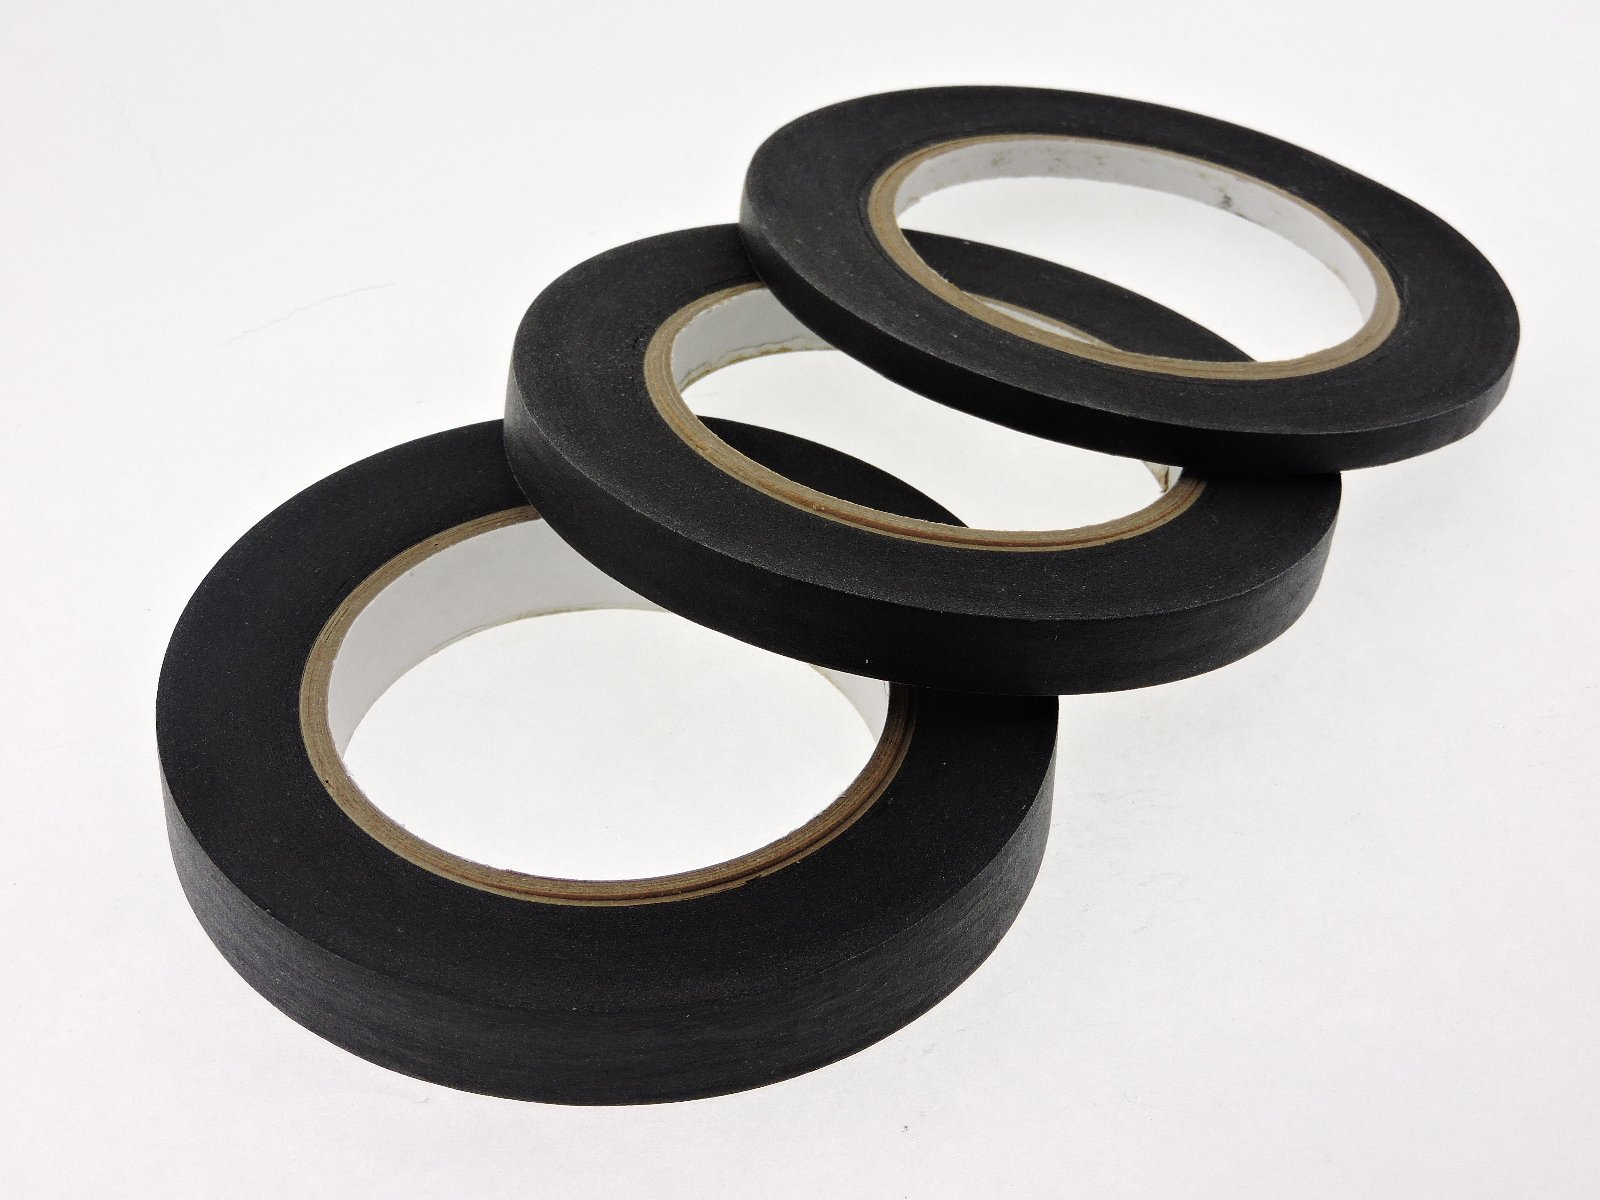 1/4'' 1/2'' 3/4'' x 60 yd Multi Size Pack Black Painters Tape PROFESSIONAL Grade Fine Masking Edge Pin Stripping Trim Multi Surface Easy Removal (.25 .5 .75 in)